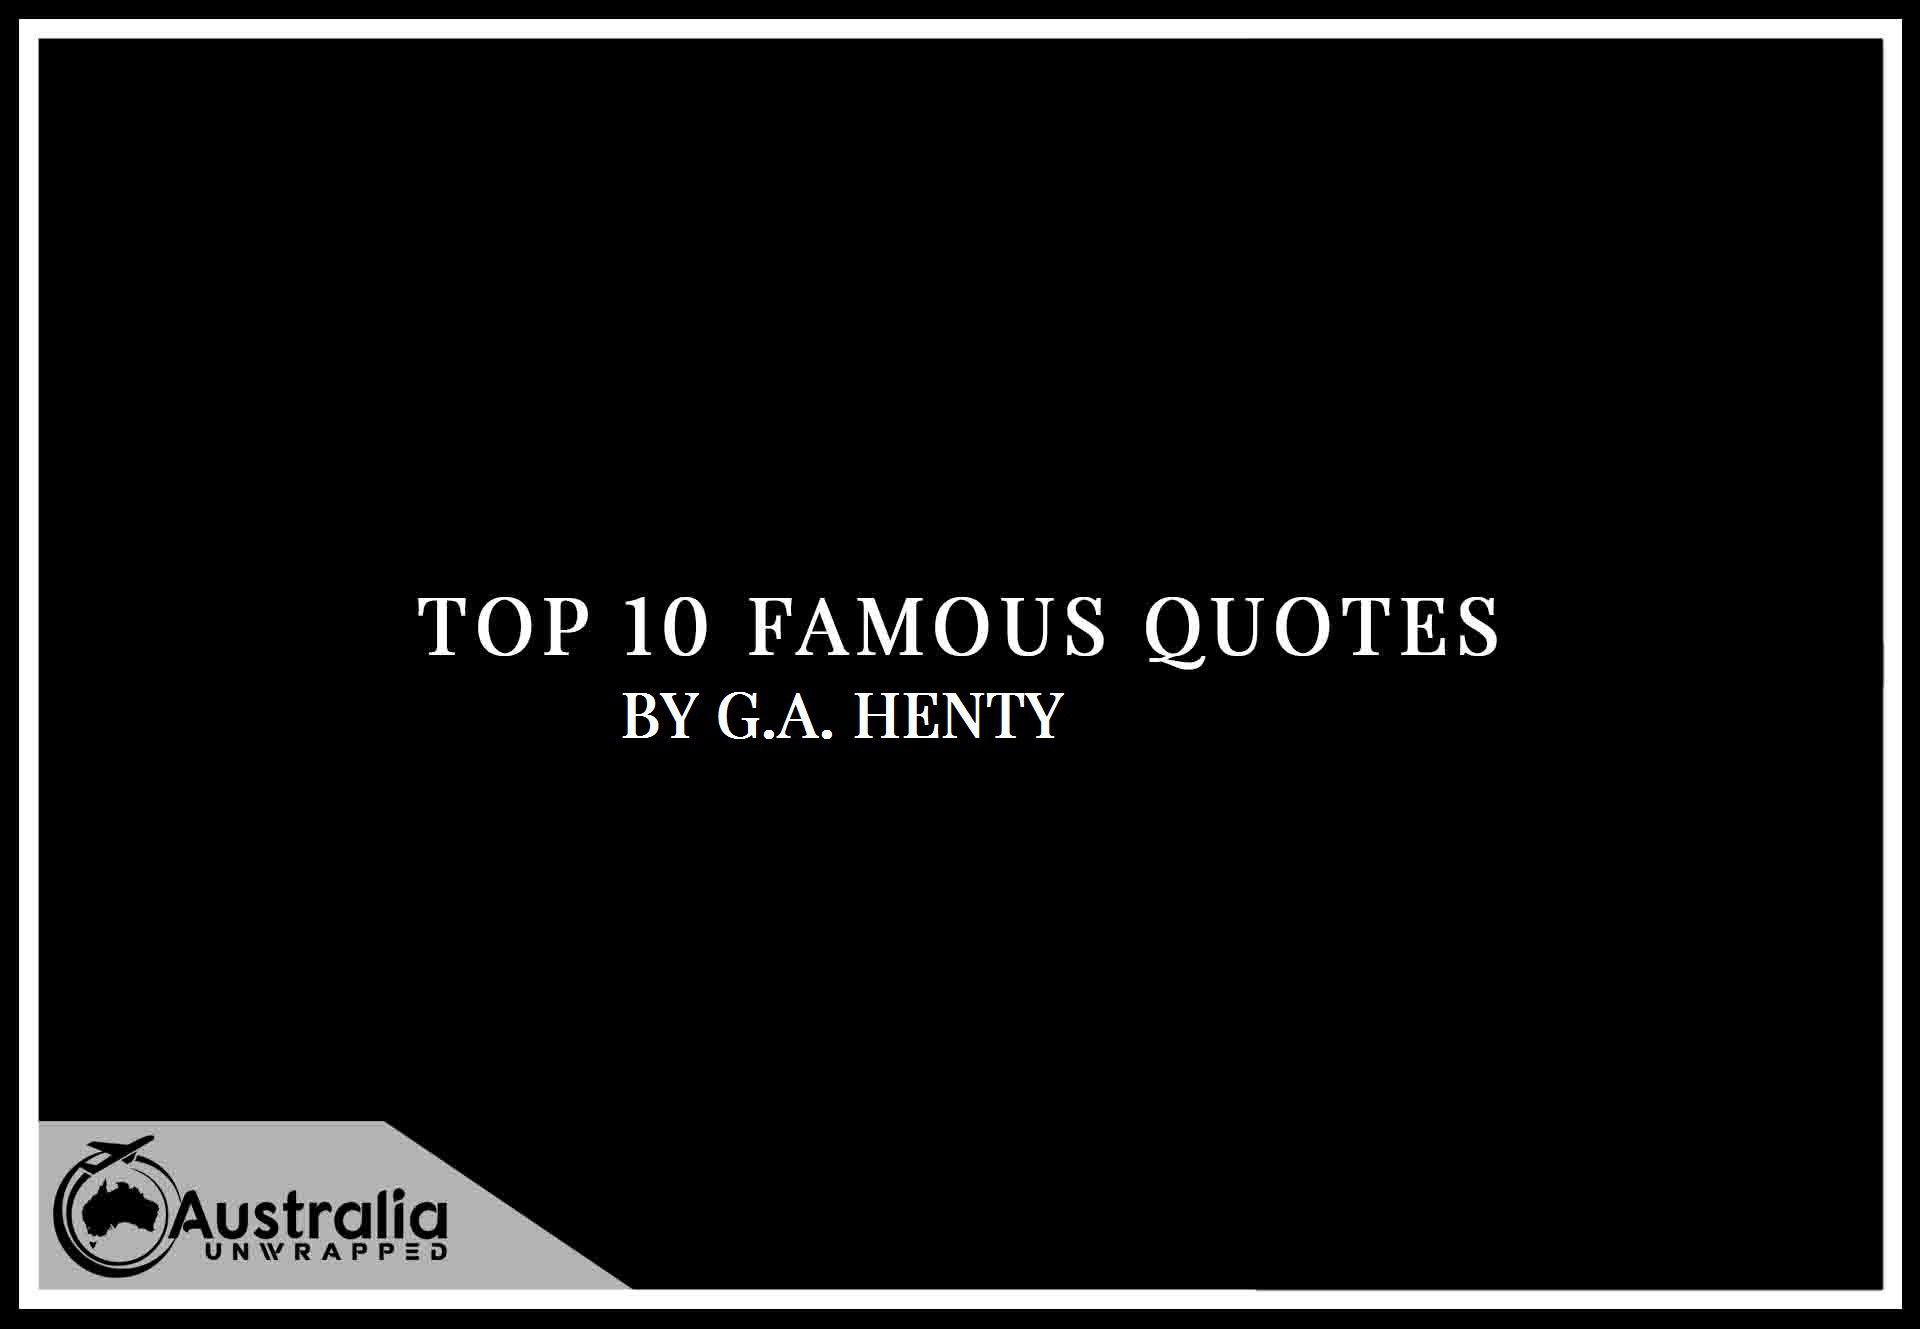 G. A. HENTY's Top 10 Popular and Famous Quotes